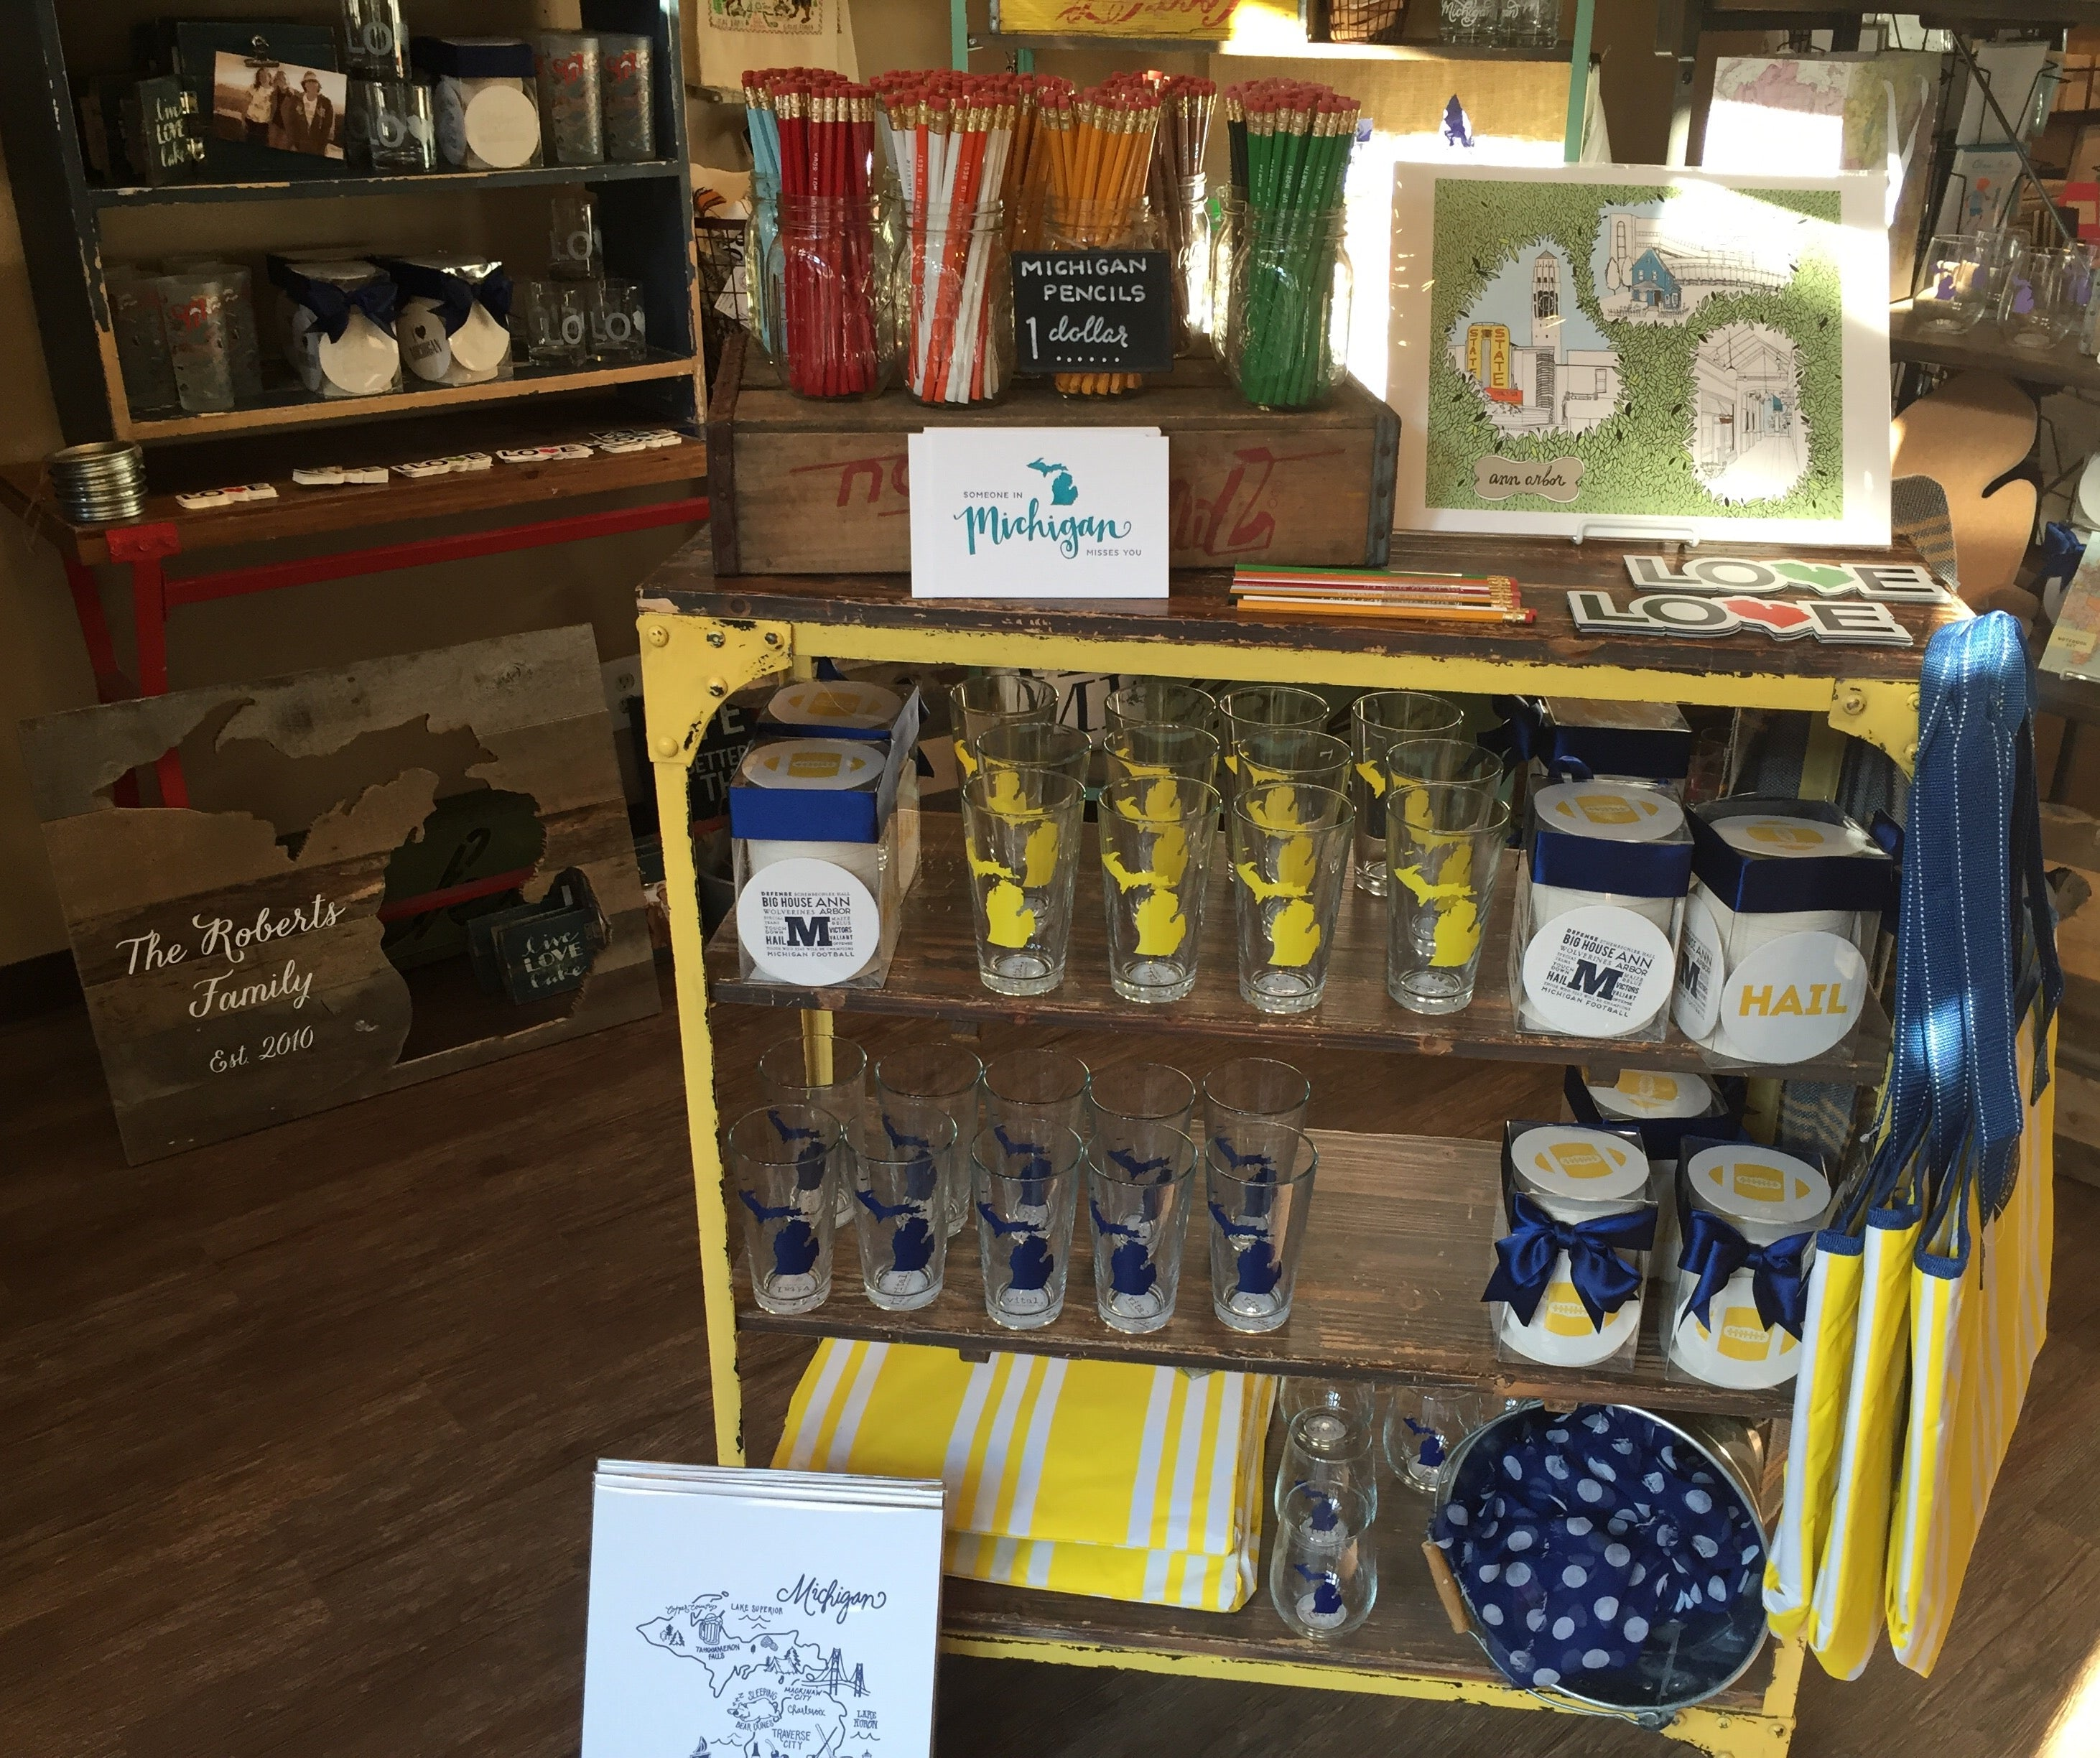 Take home a Michigan gift to remind you of your visit to Ann Arbor. Look at all that maize and blue!